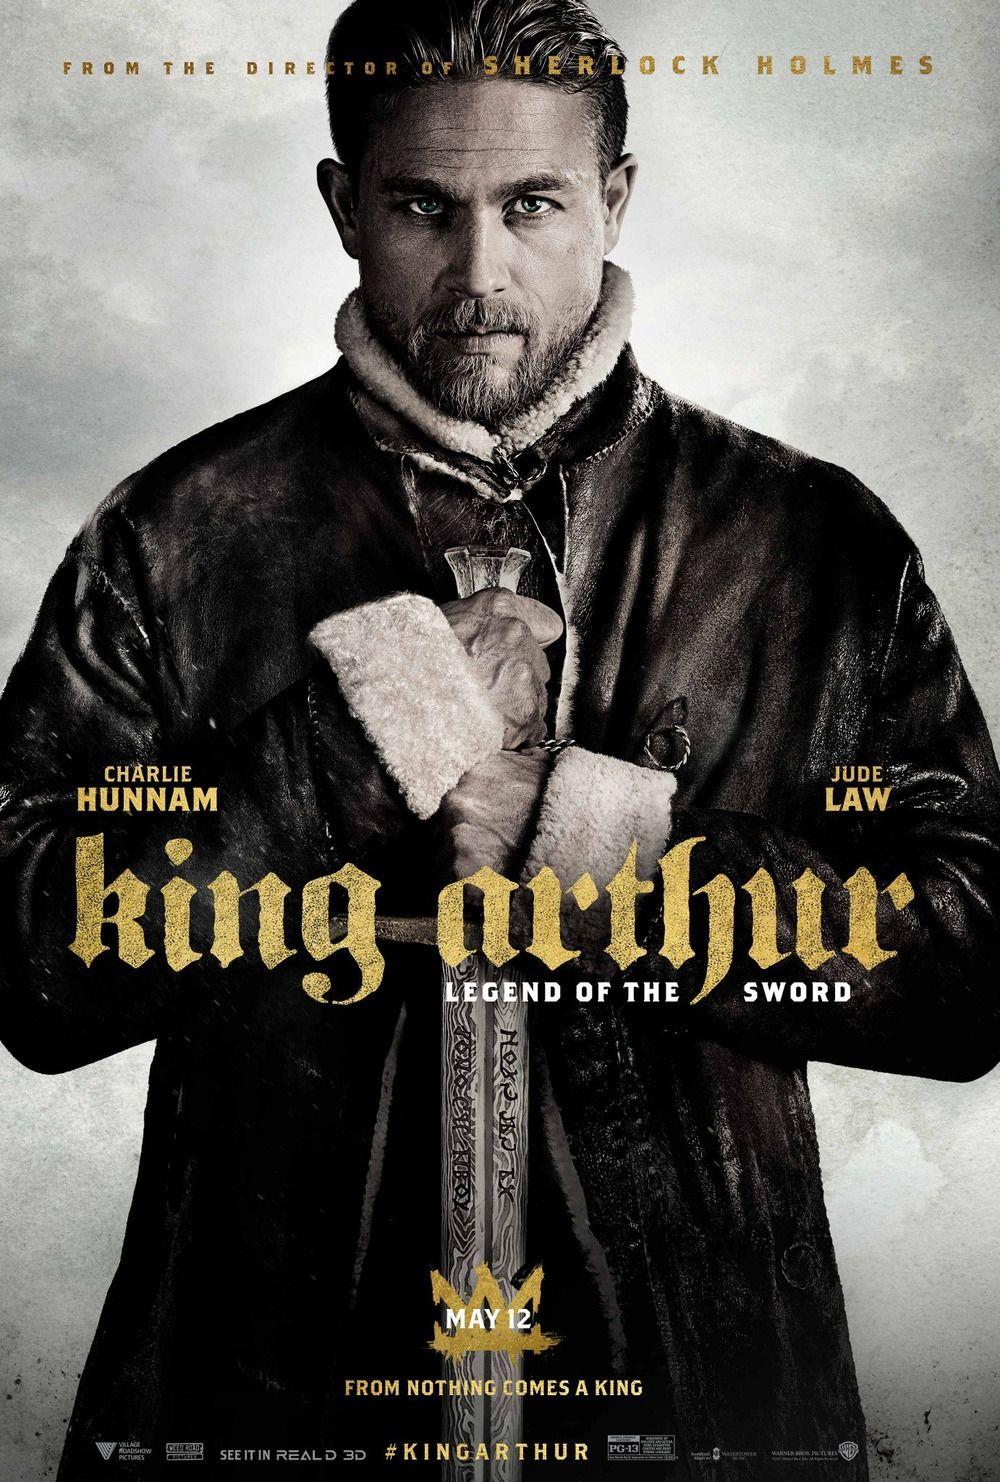 Release date set for August Also King Arthur: Legend of the Sword Redbox, Netflix, and iTunes release dates.